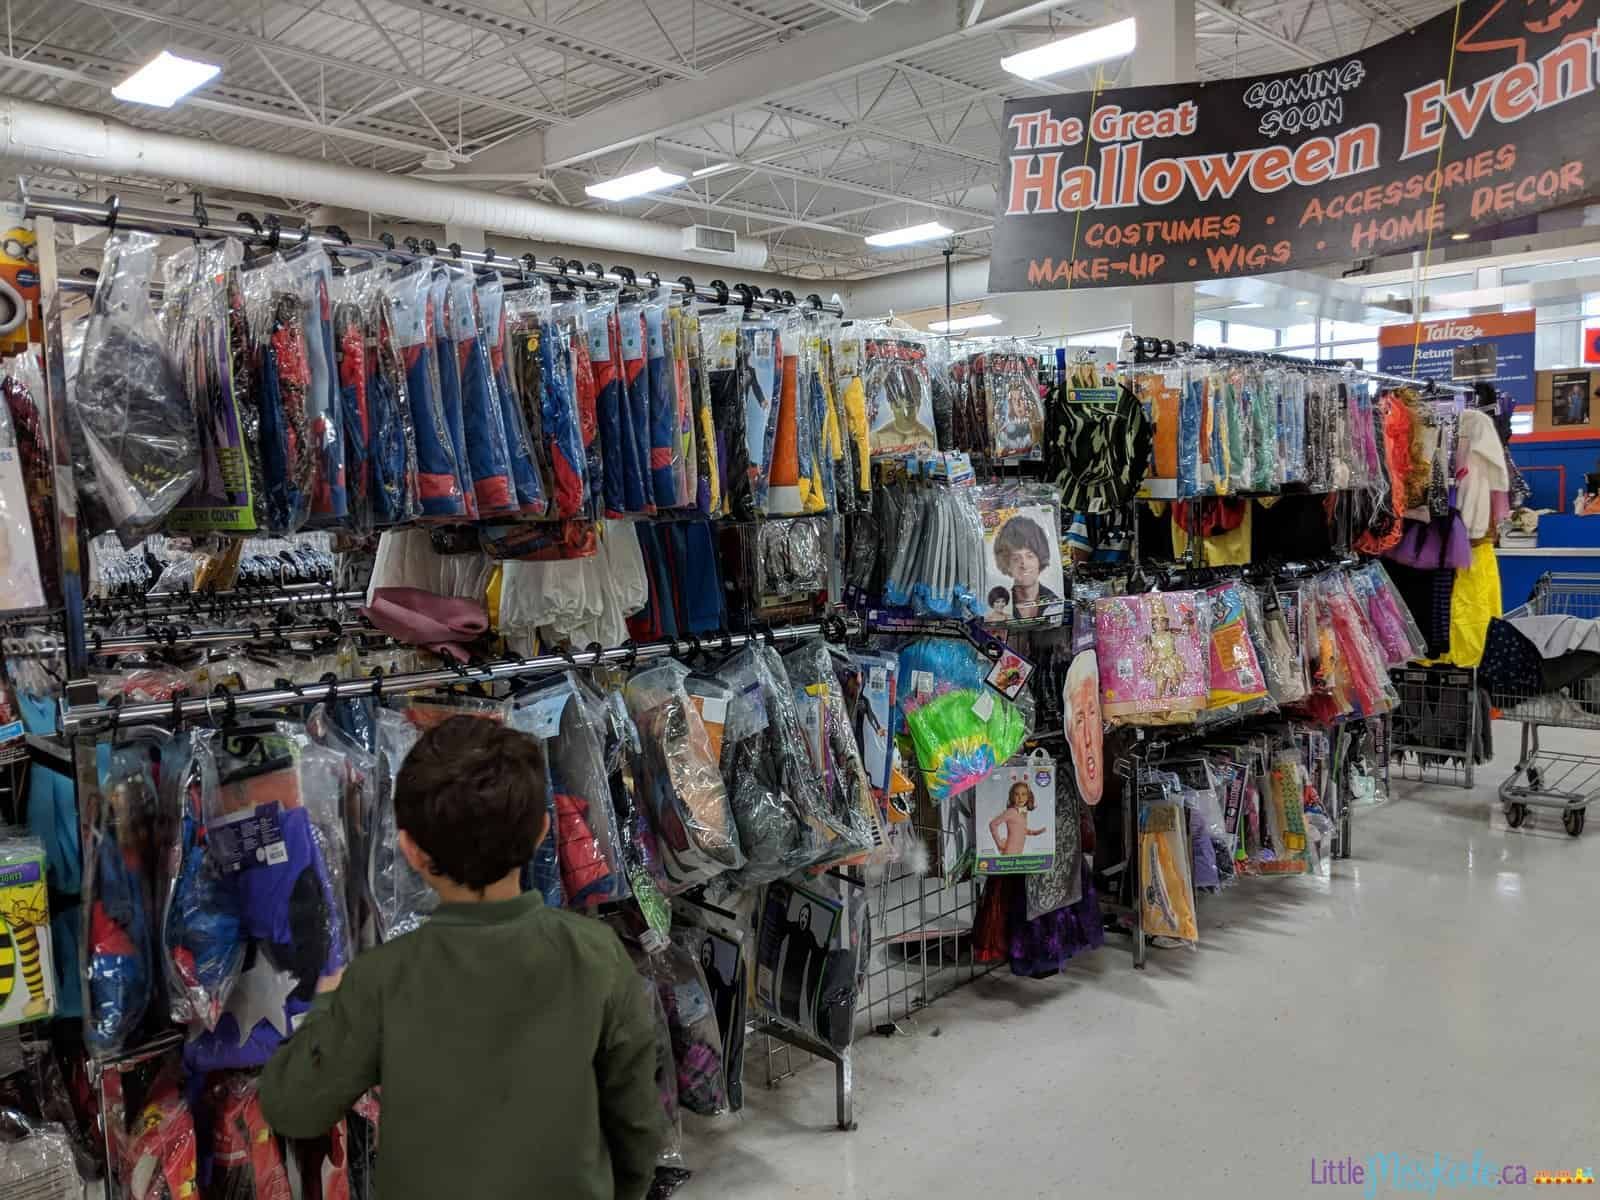 where to buy halloween costumes and decorations in brampton - little